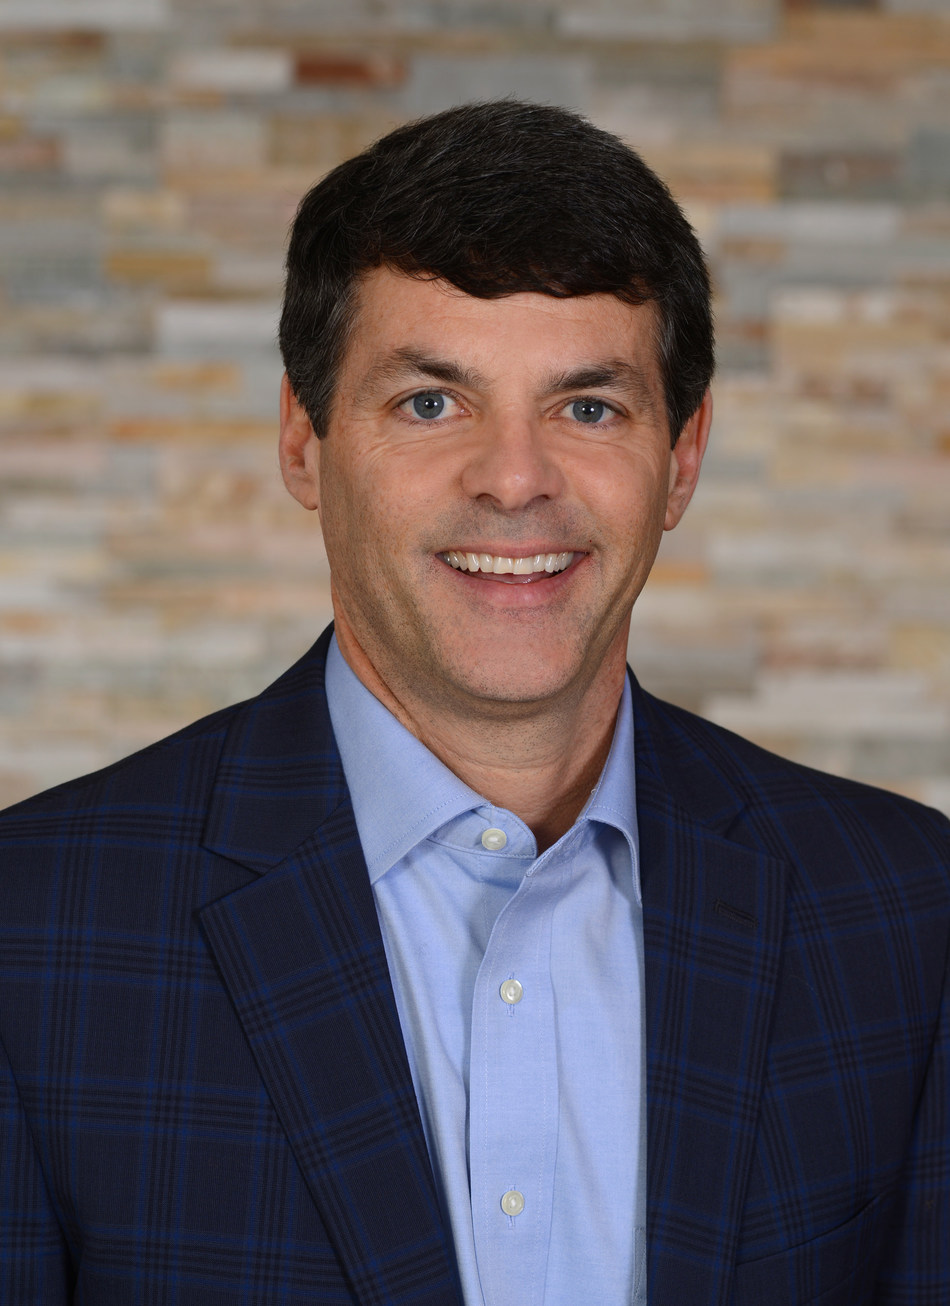 Rich Walsh, Vice President of Business Development and Channels, Continuum Health Alliance